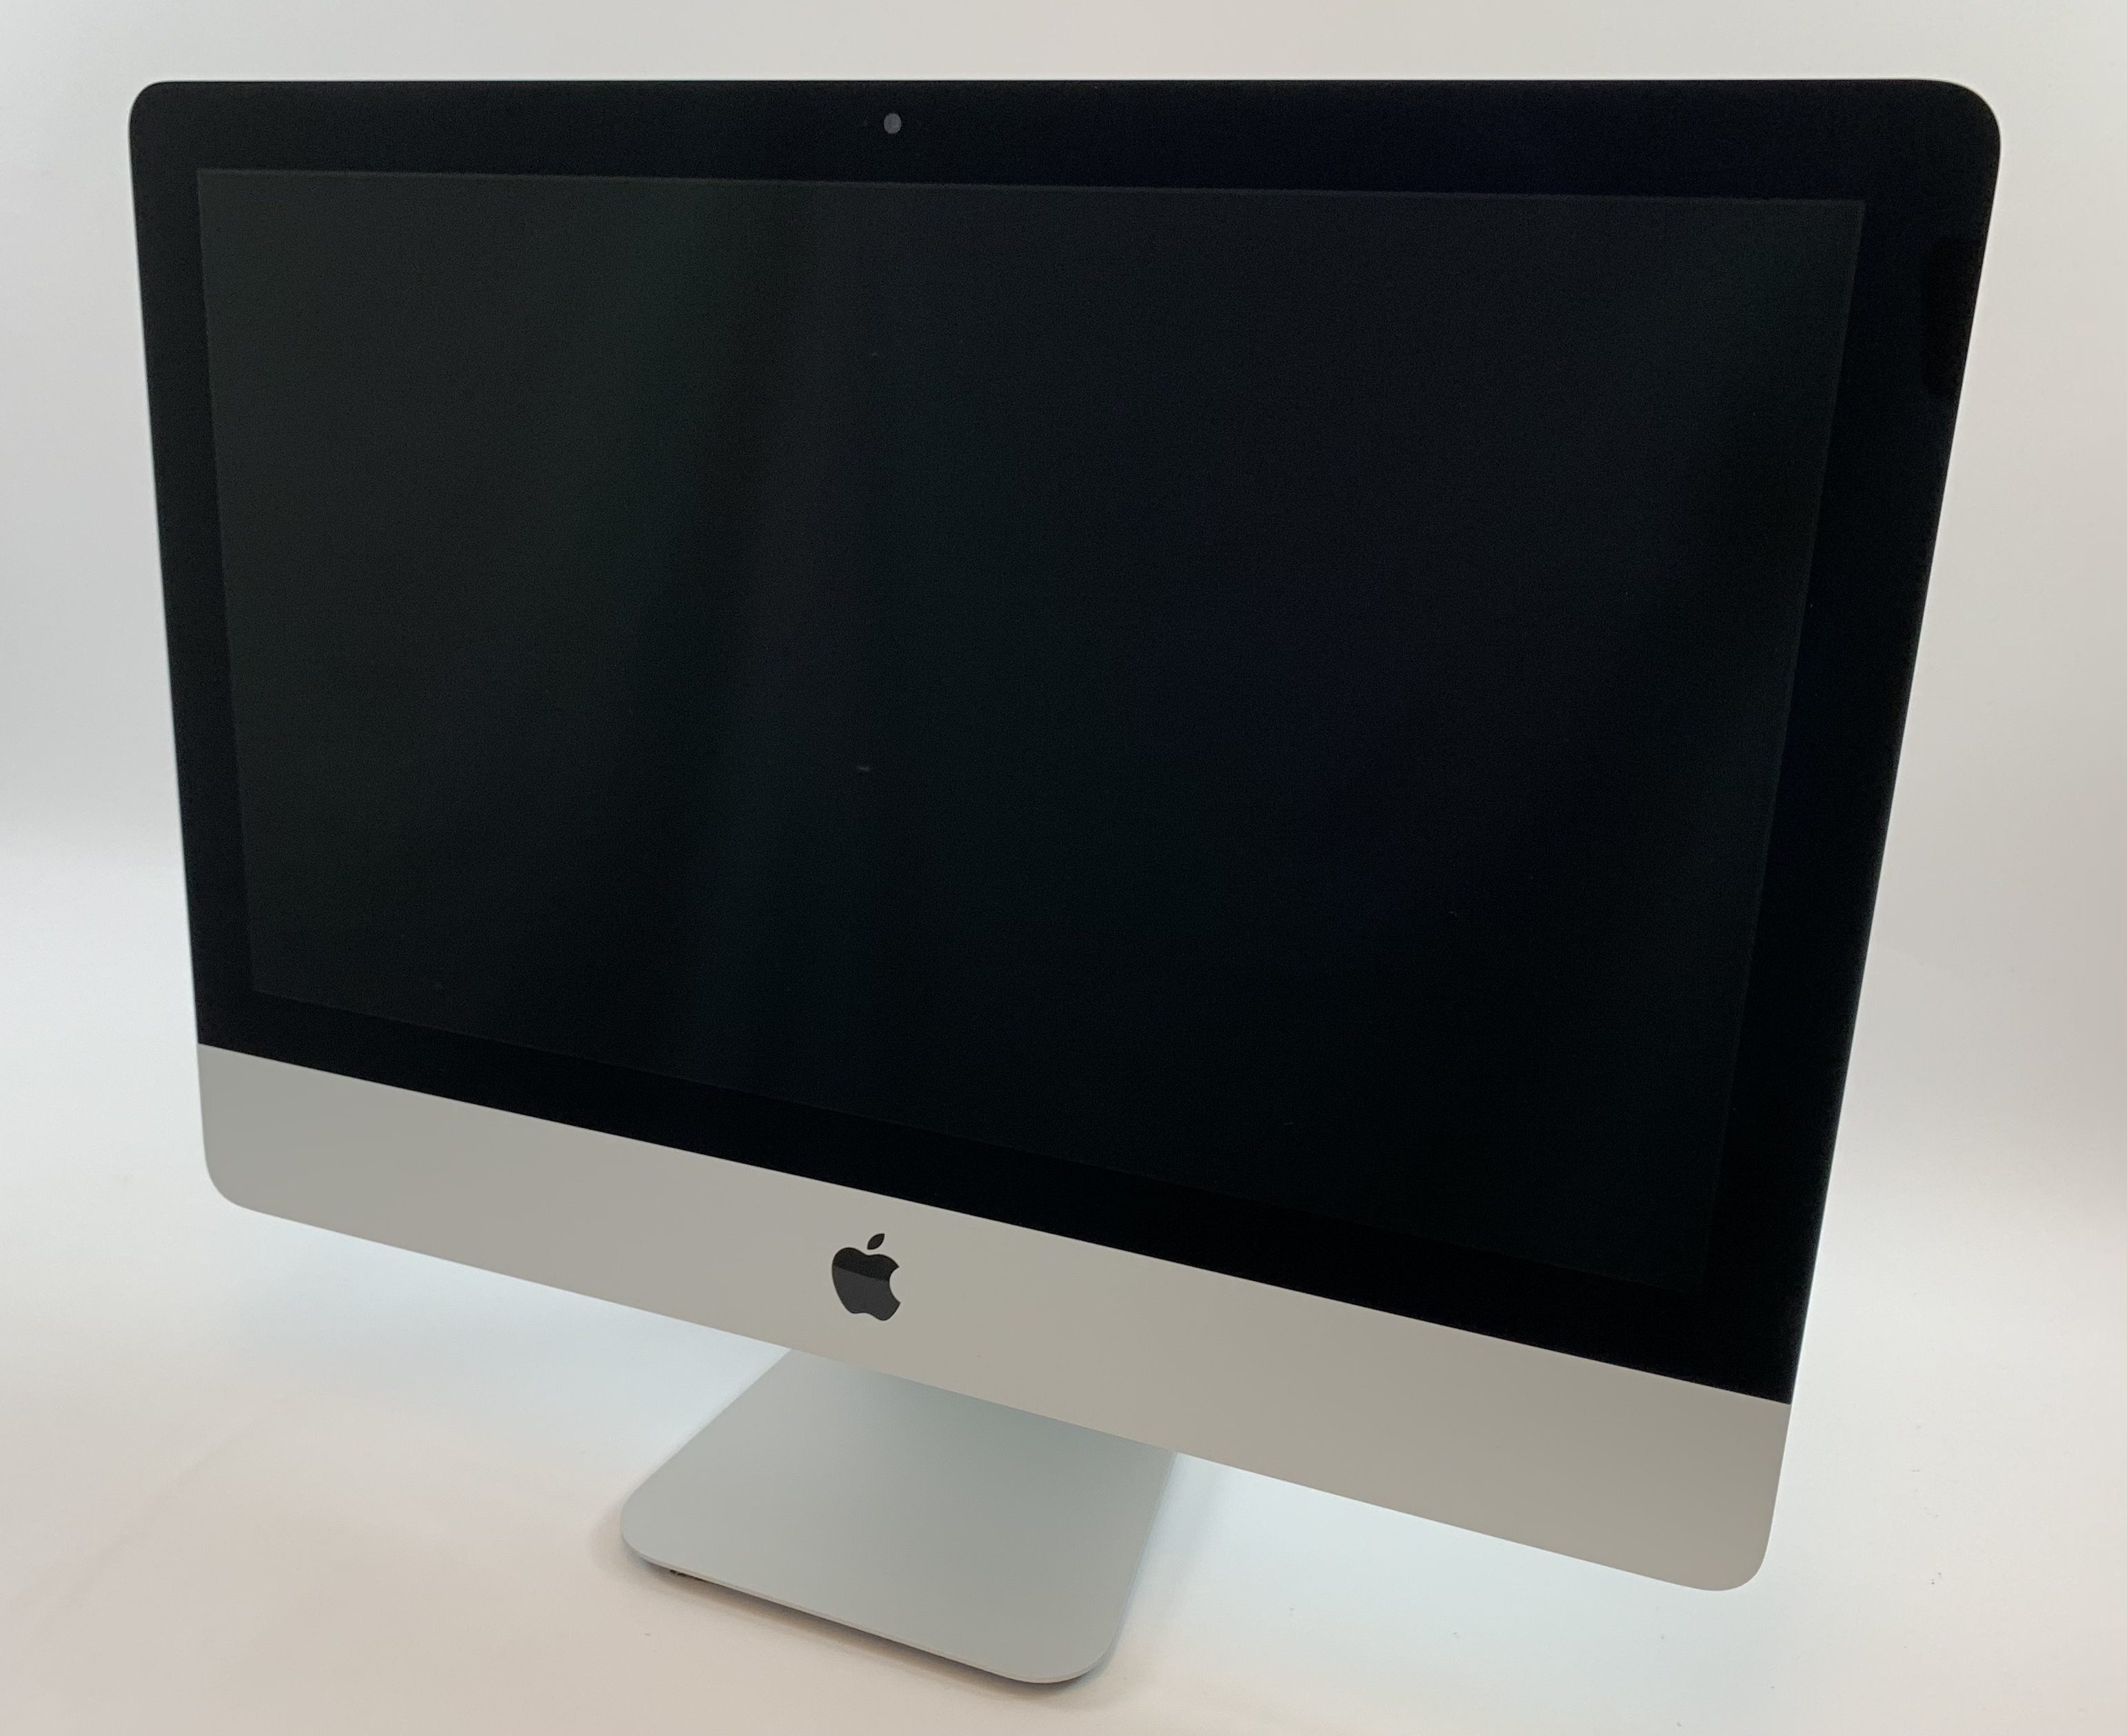 "iMac 21.5"" Mid 2017 (Intel Core i5 2.3 GHz 8 GB RAM 1 TB HDD), Intel Core i5 2.3 GHz, 8 GB RAM, 1 TB HDD, imagen 1"